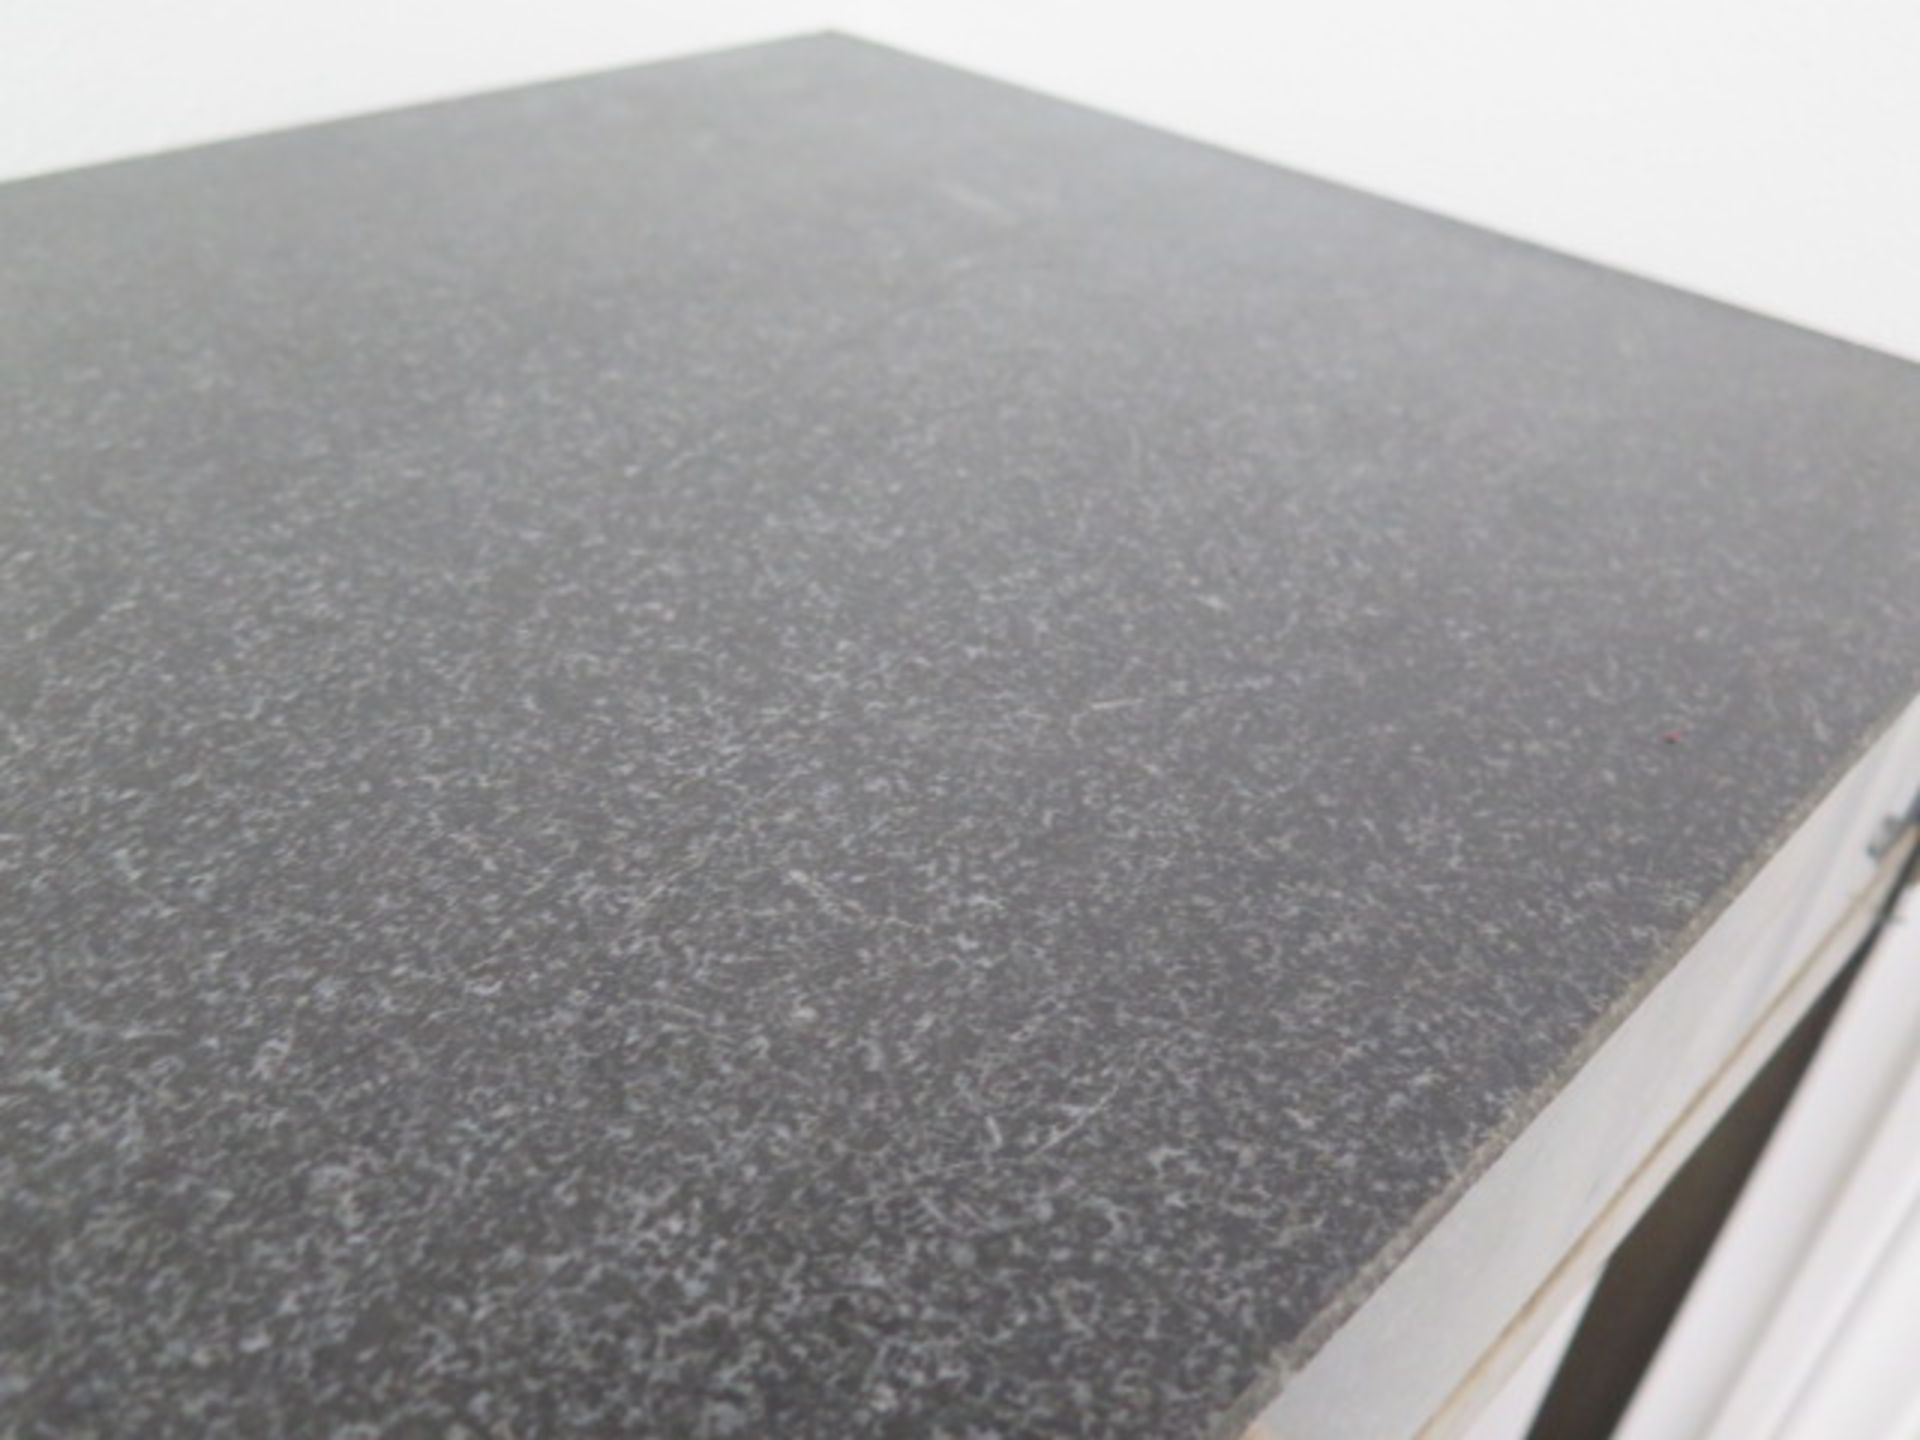 """18"""" x 24"""" x 4"""" 2-Ledge Granite Surface Plate w/ Roll Stand (SOLD AS-IS - NO WARRANTY) - Image 3 of 4"""